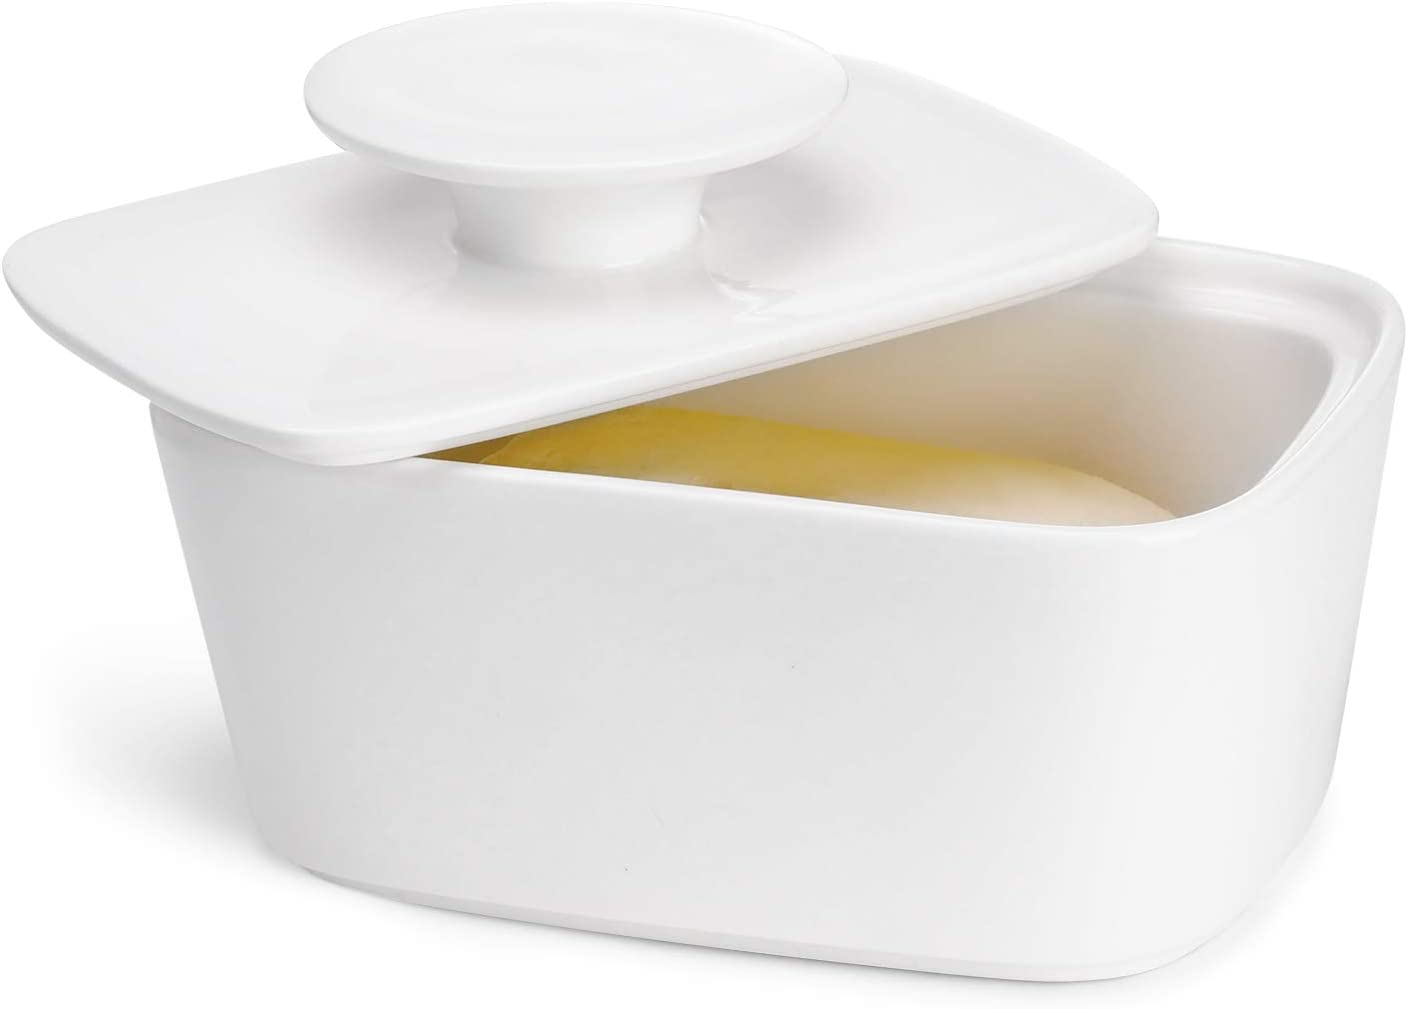 Sweese 321.101 Large Butter Dish with Lid Porcelain Butter Keeper Container White Perfect for East Coast West Coast Butter and Kerrygold Butter